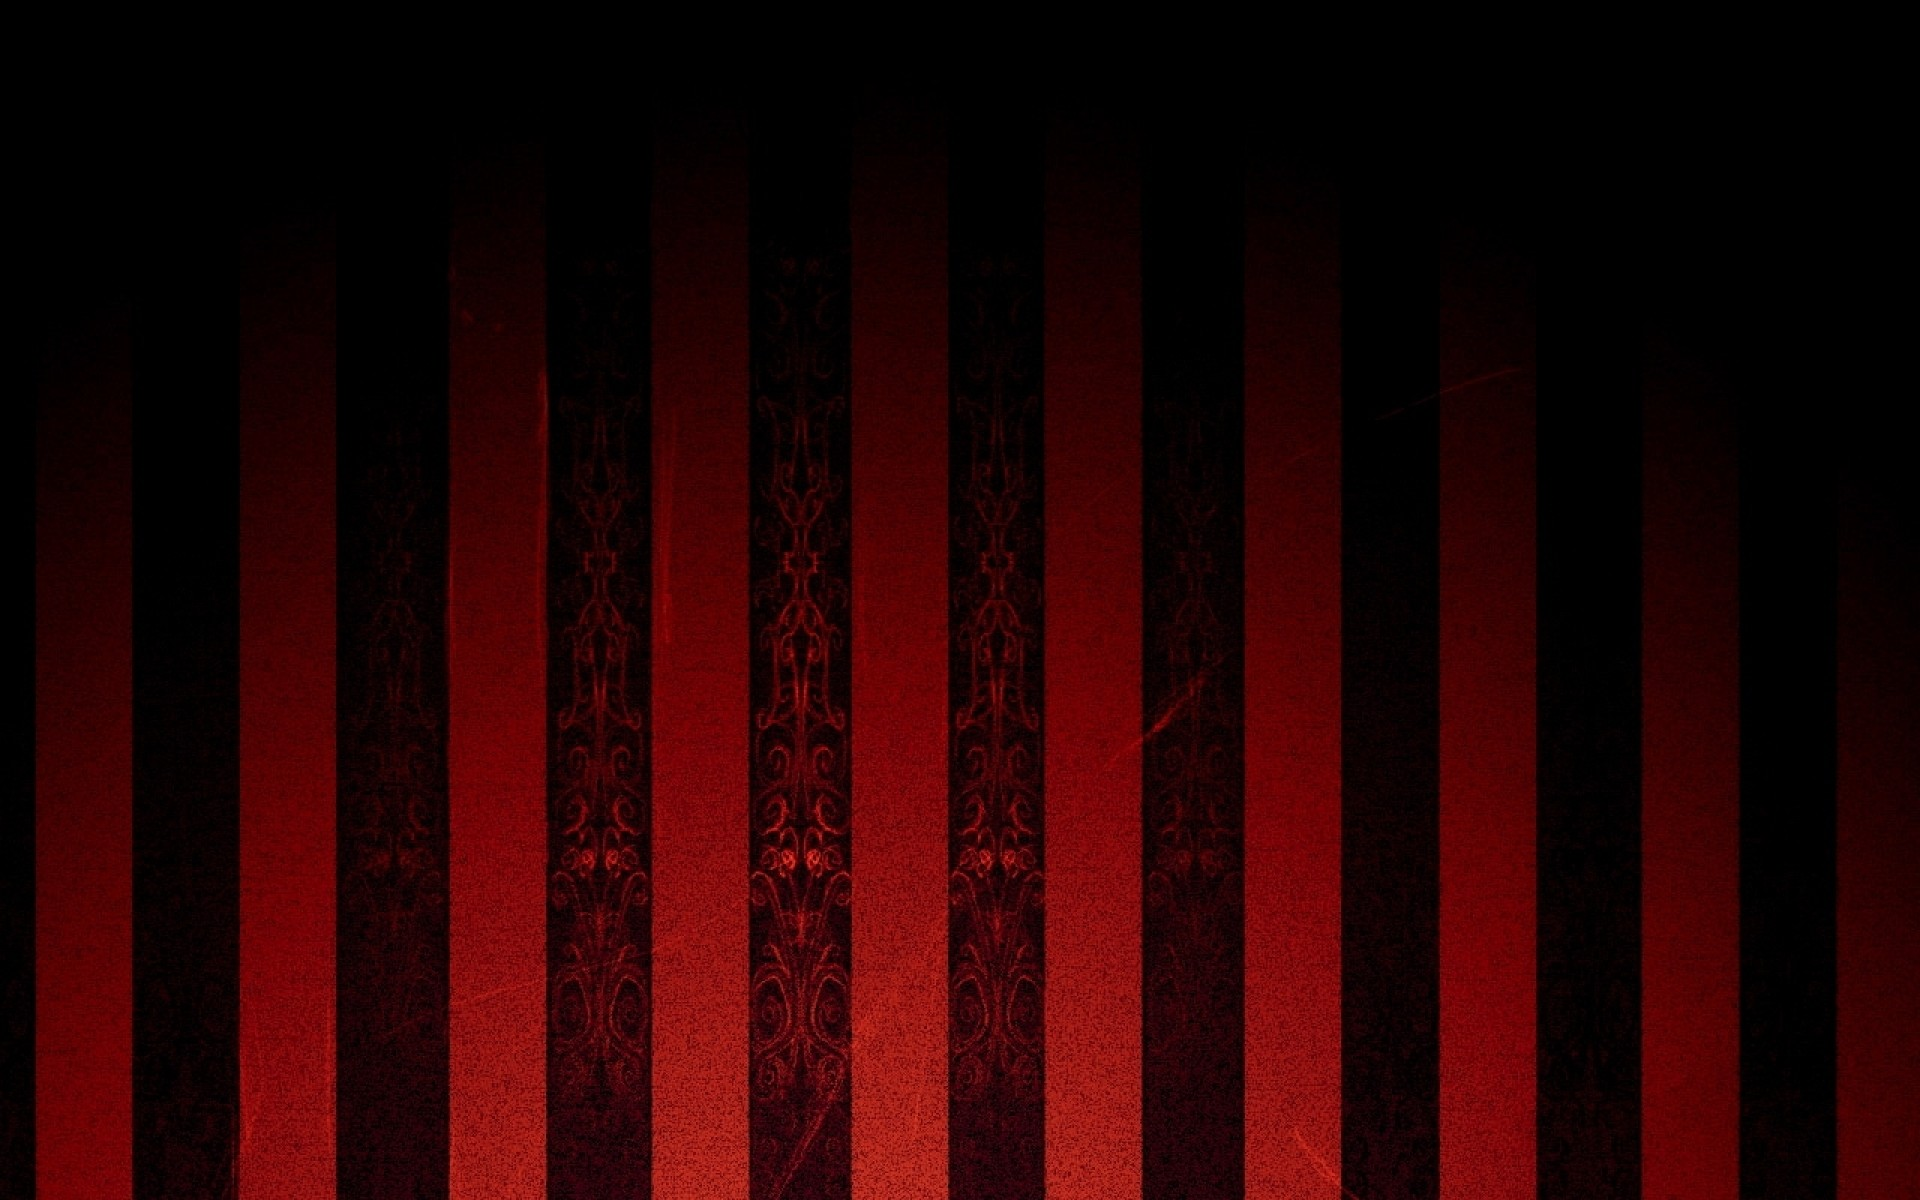 1920x1200 Black Red hd wallpaper for desktop | HD Wallpaper